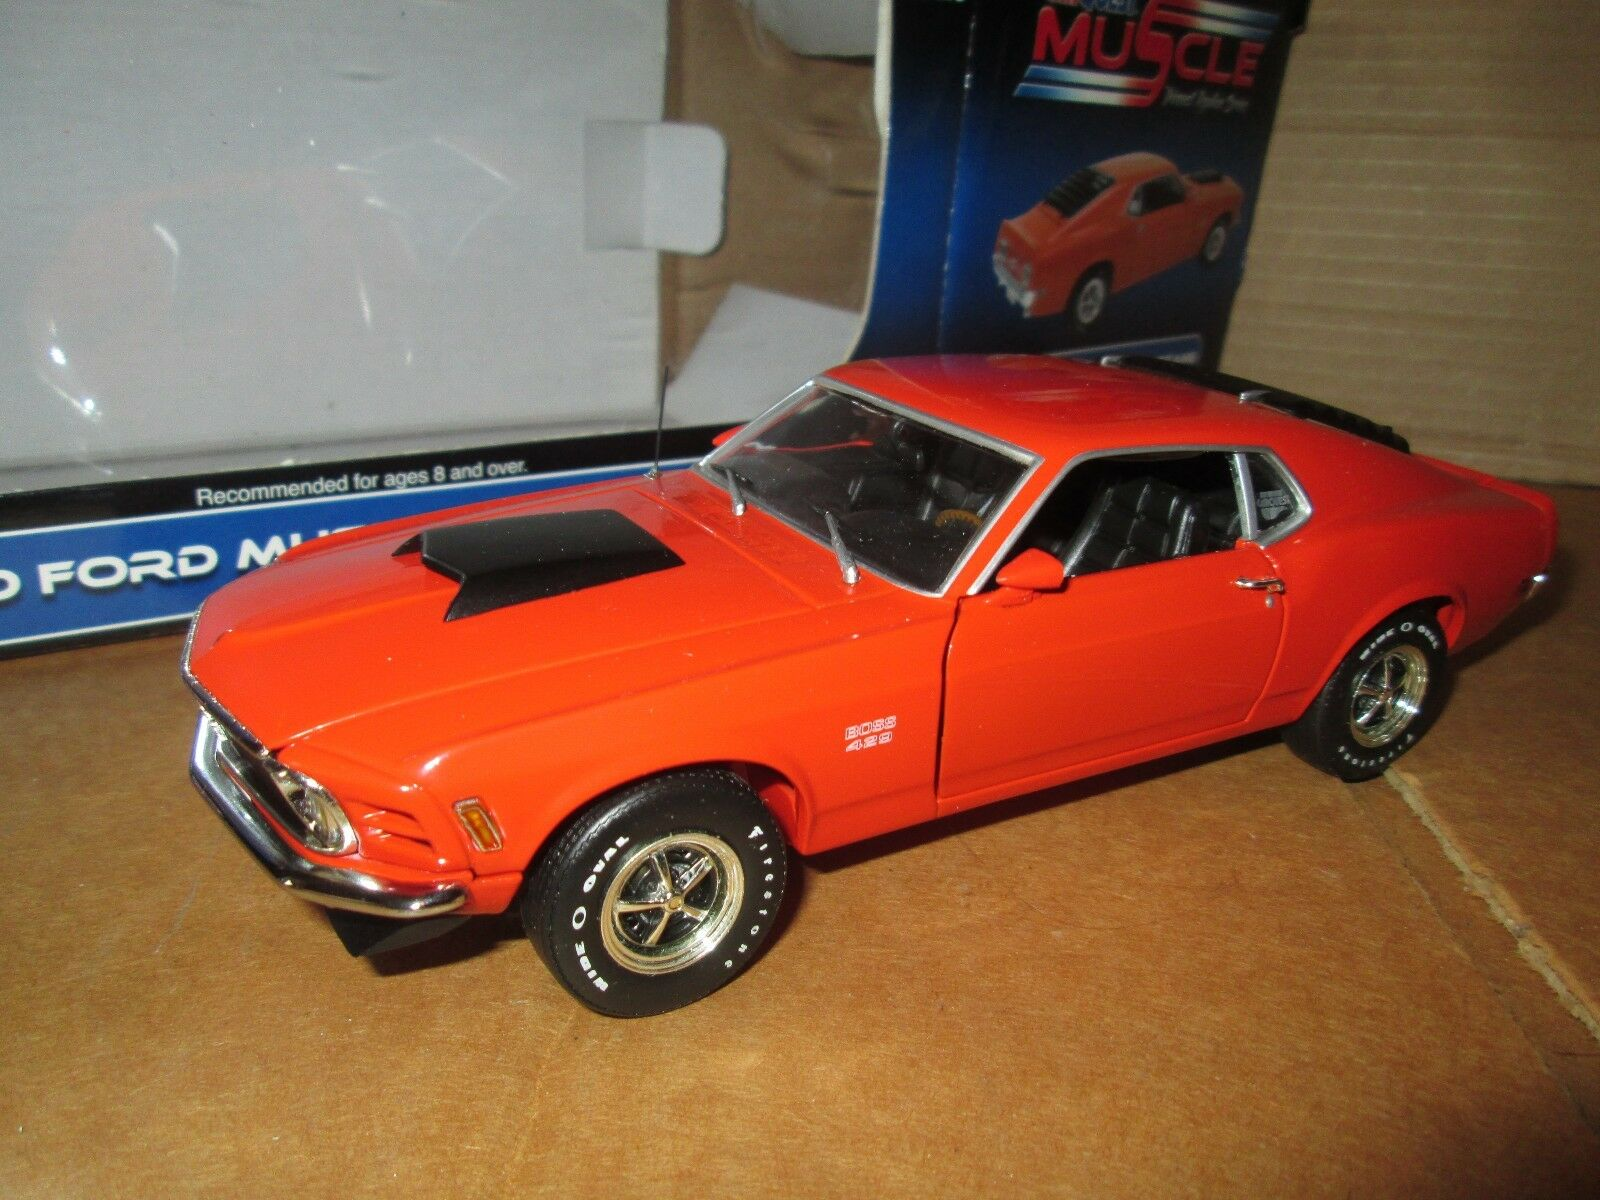 1970 Mustang Ford Rivete 429 arancia First Gear Coche Quest Auto Partes 1 25